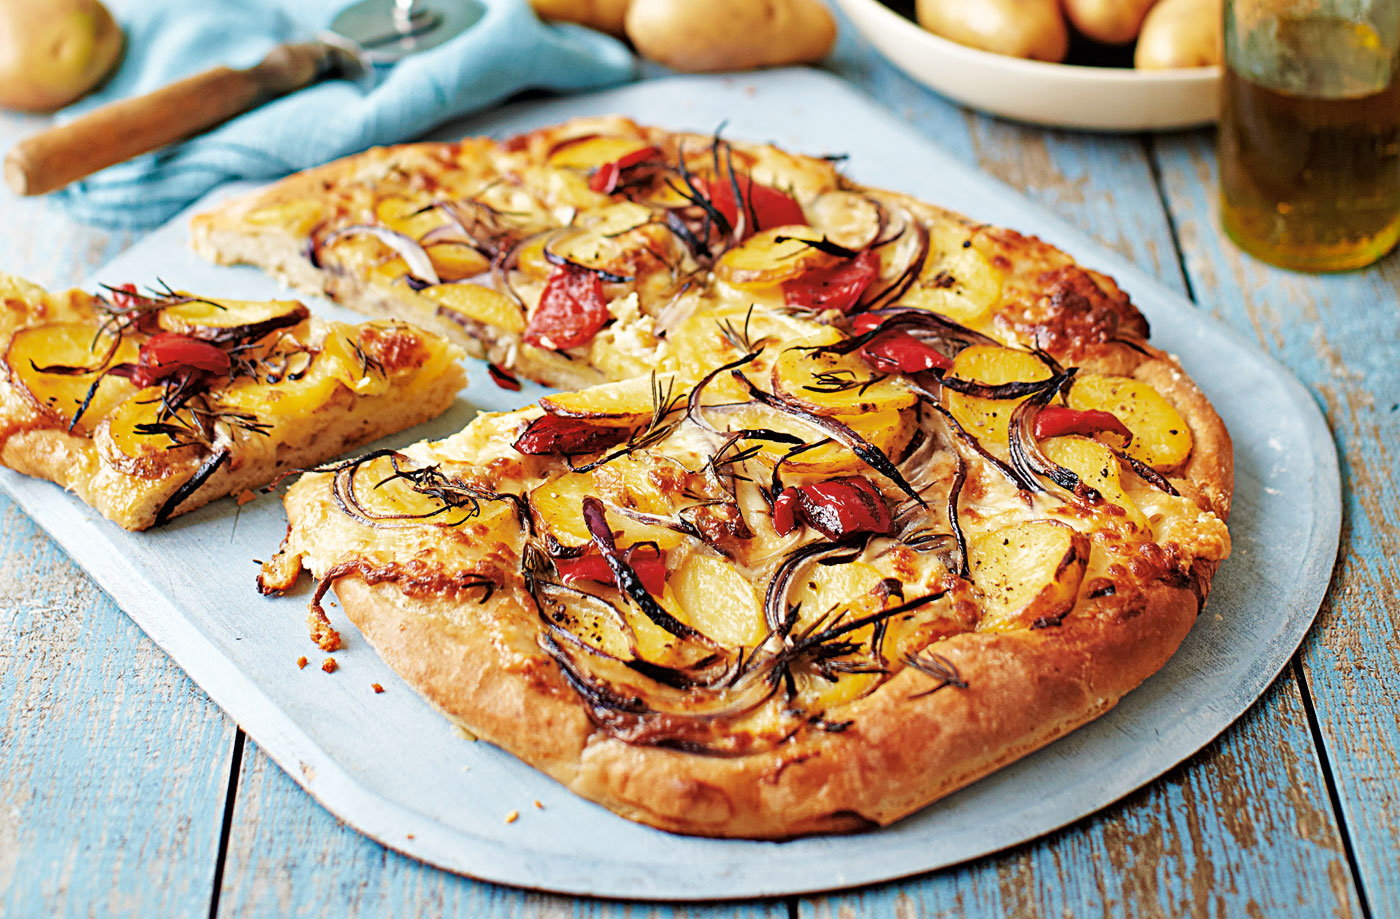 Potato, red onion and rosemary pizza